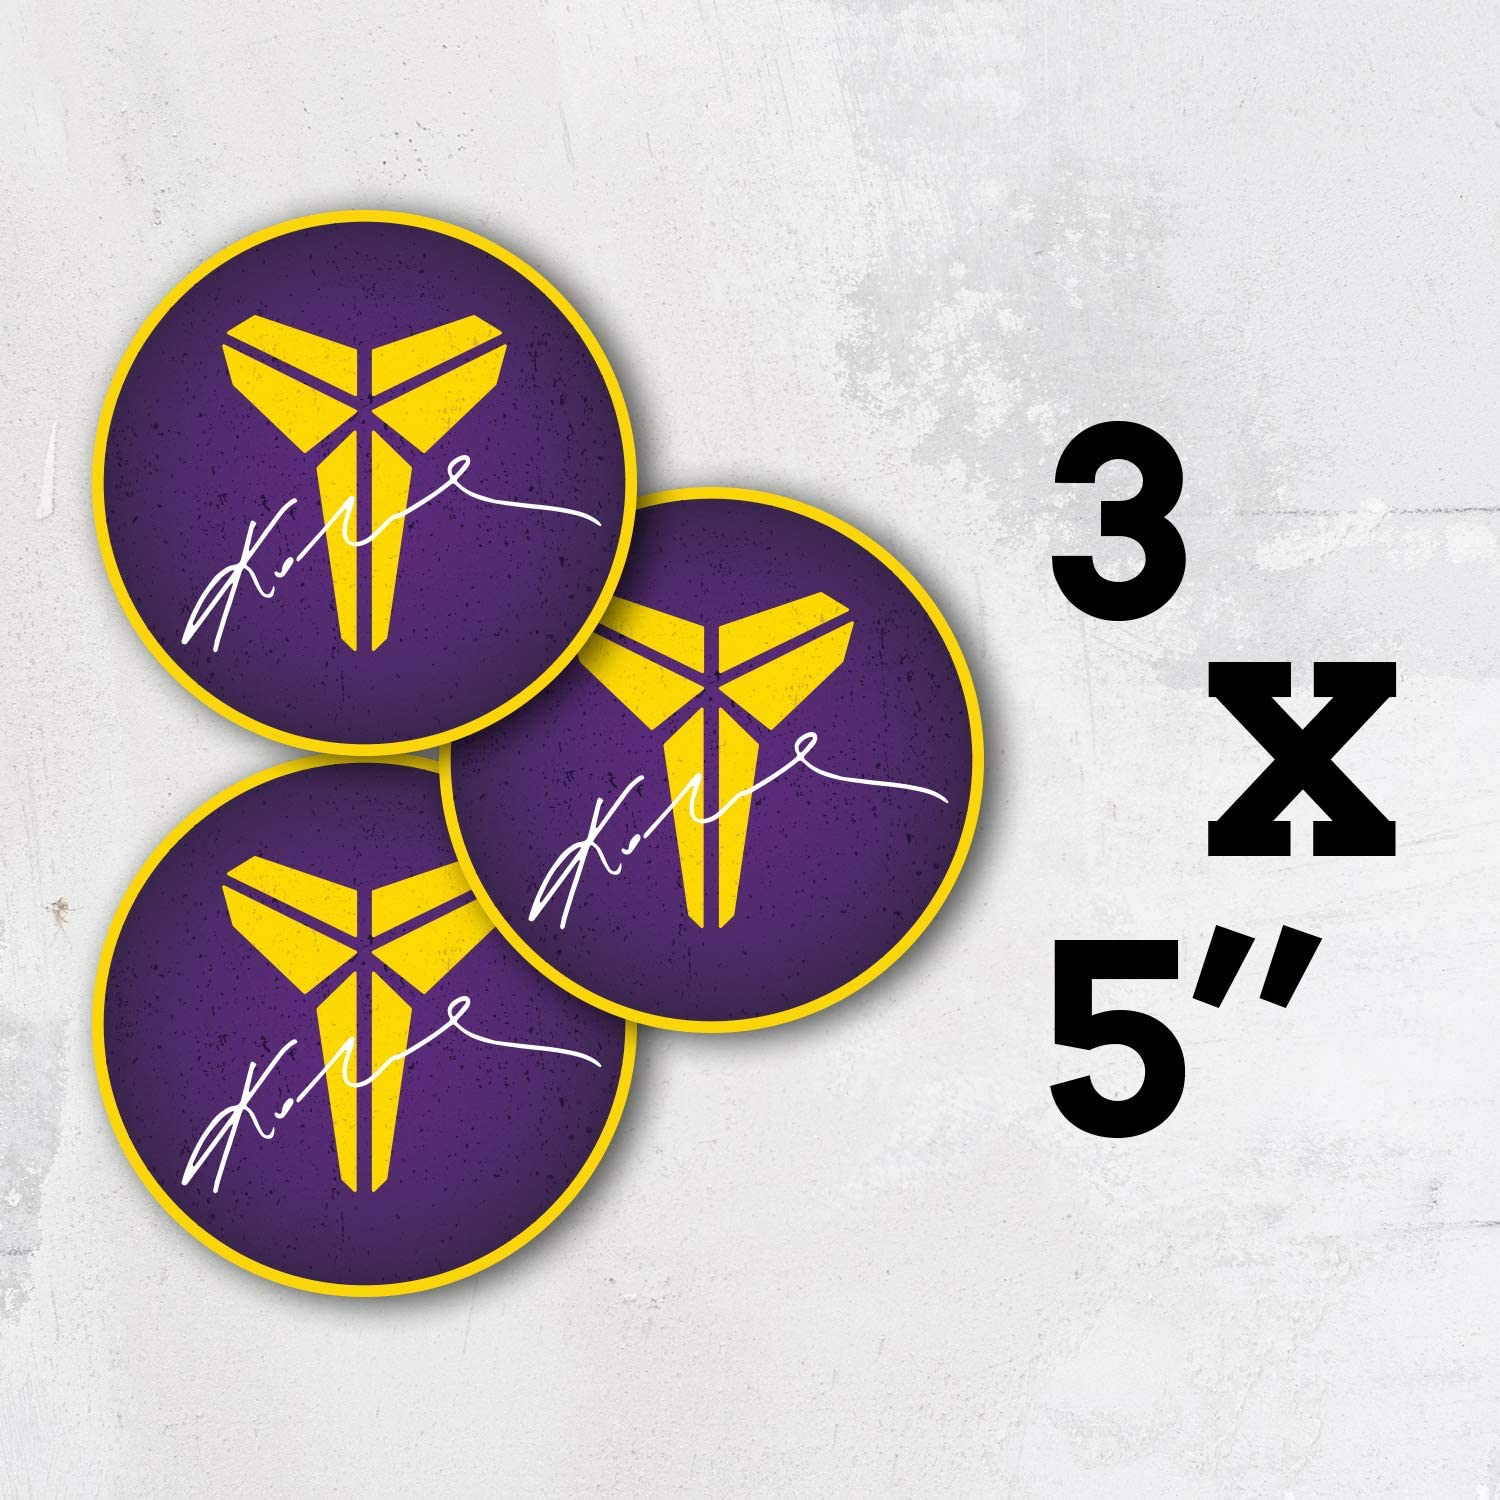 Koby Bryant Logo Signature Vinyl Lakers Basketball Los Angeles Sticker Decal Set of 3 Pieces - 5'' x 5''